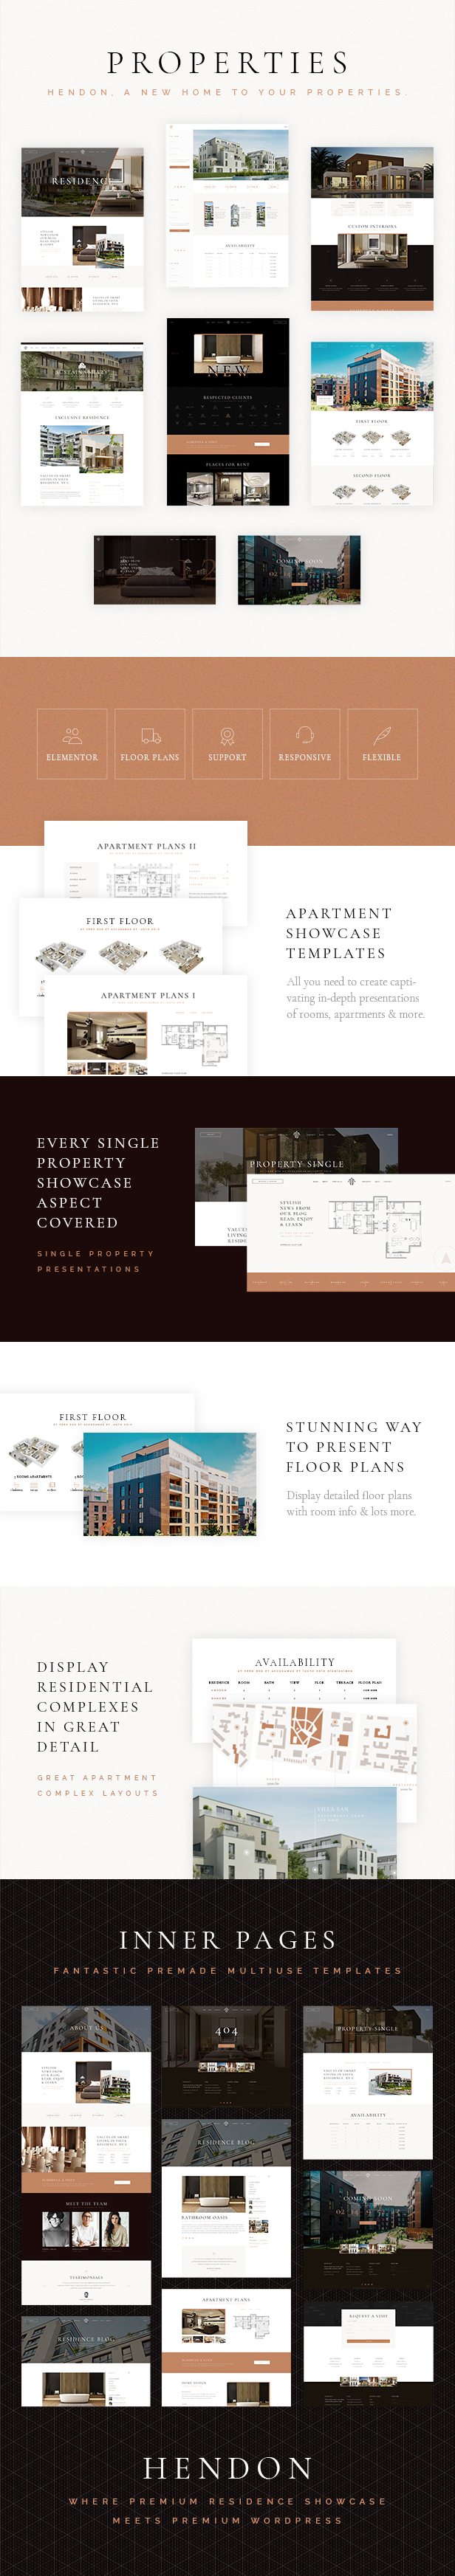 Hendon - Single Property and Apartment Complex Theme - 2